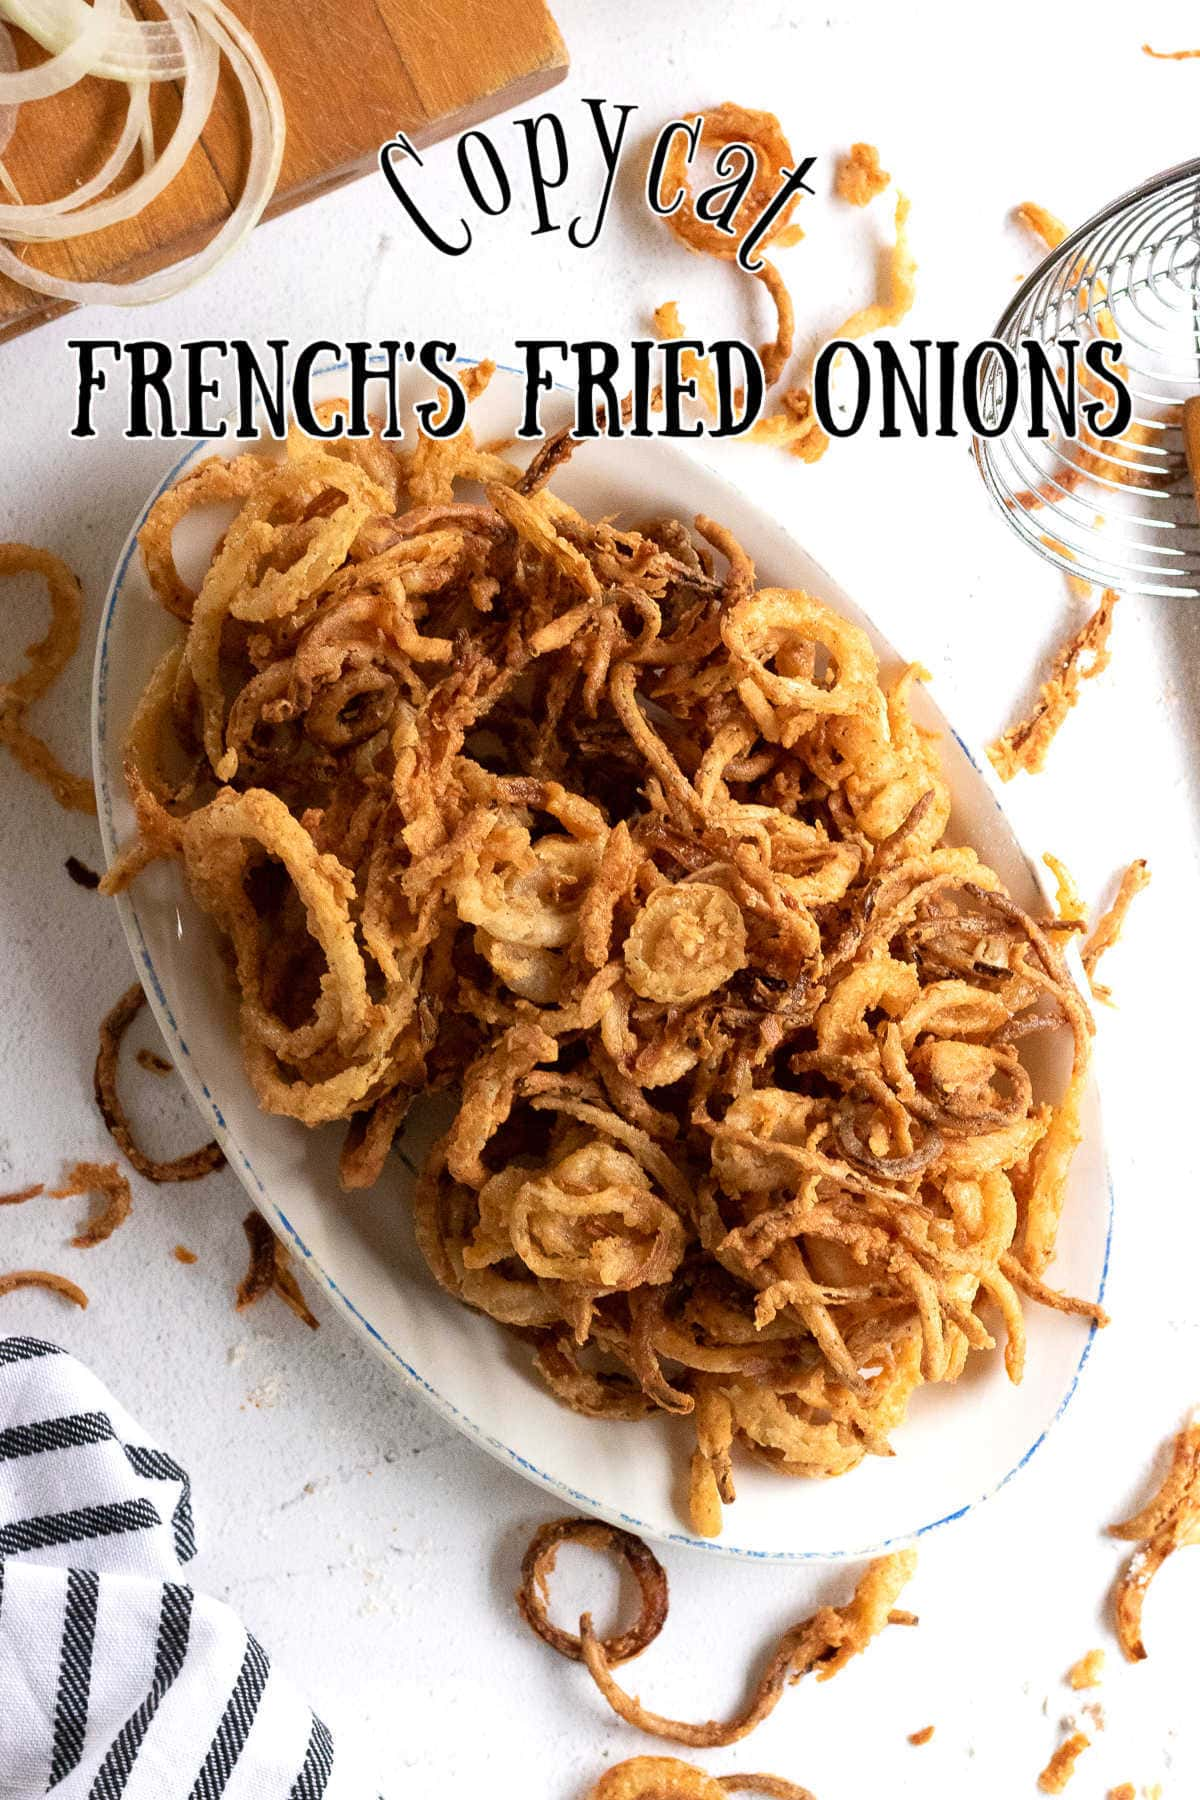 Overhead view of a platter of finished fried onions.